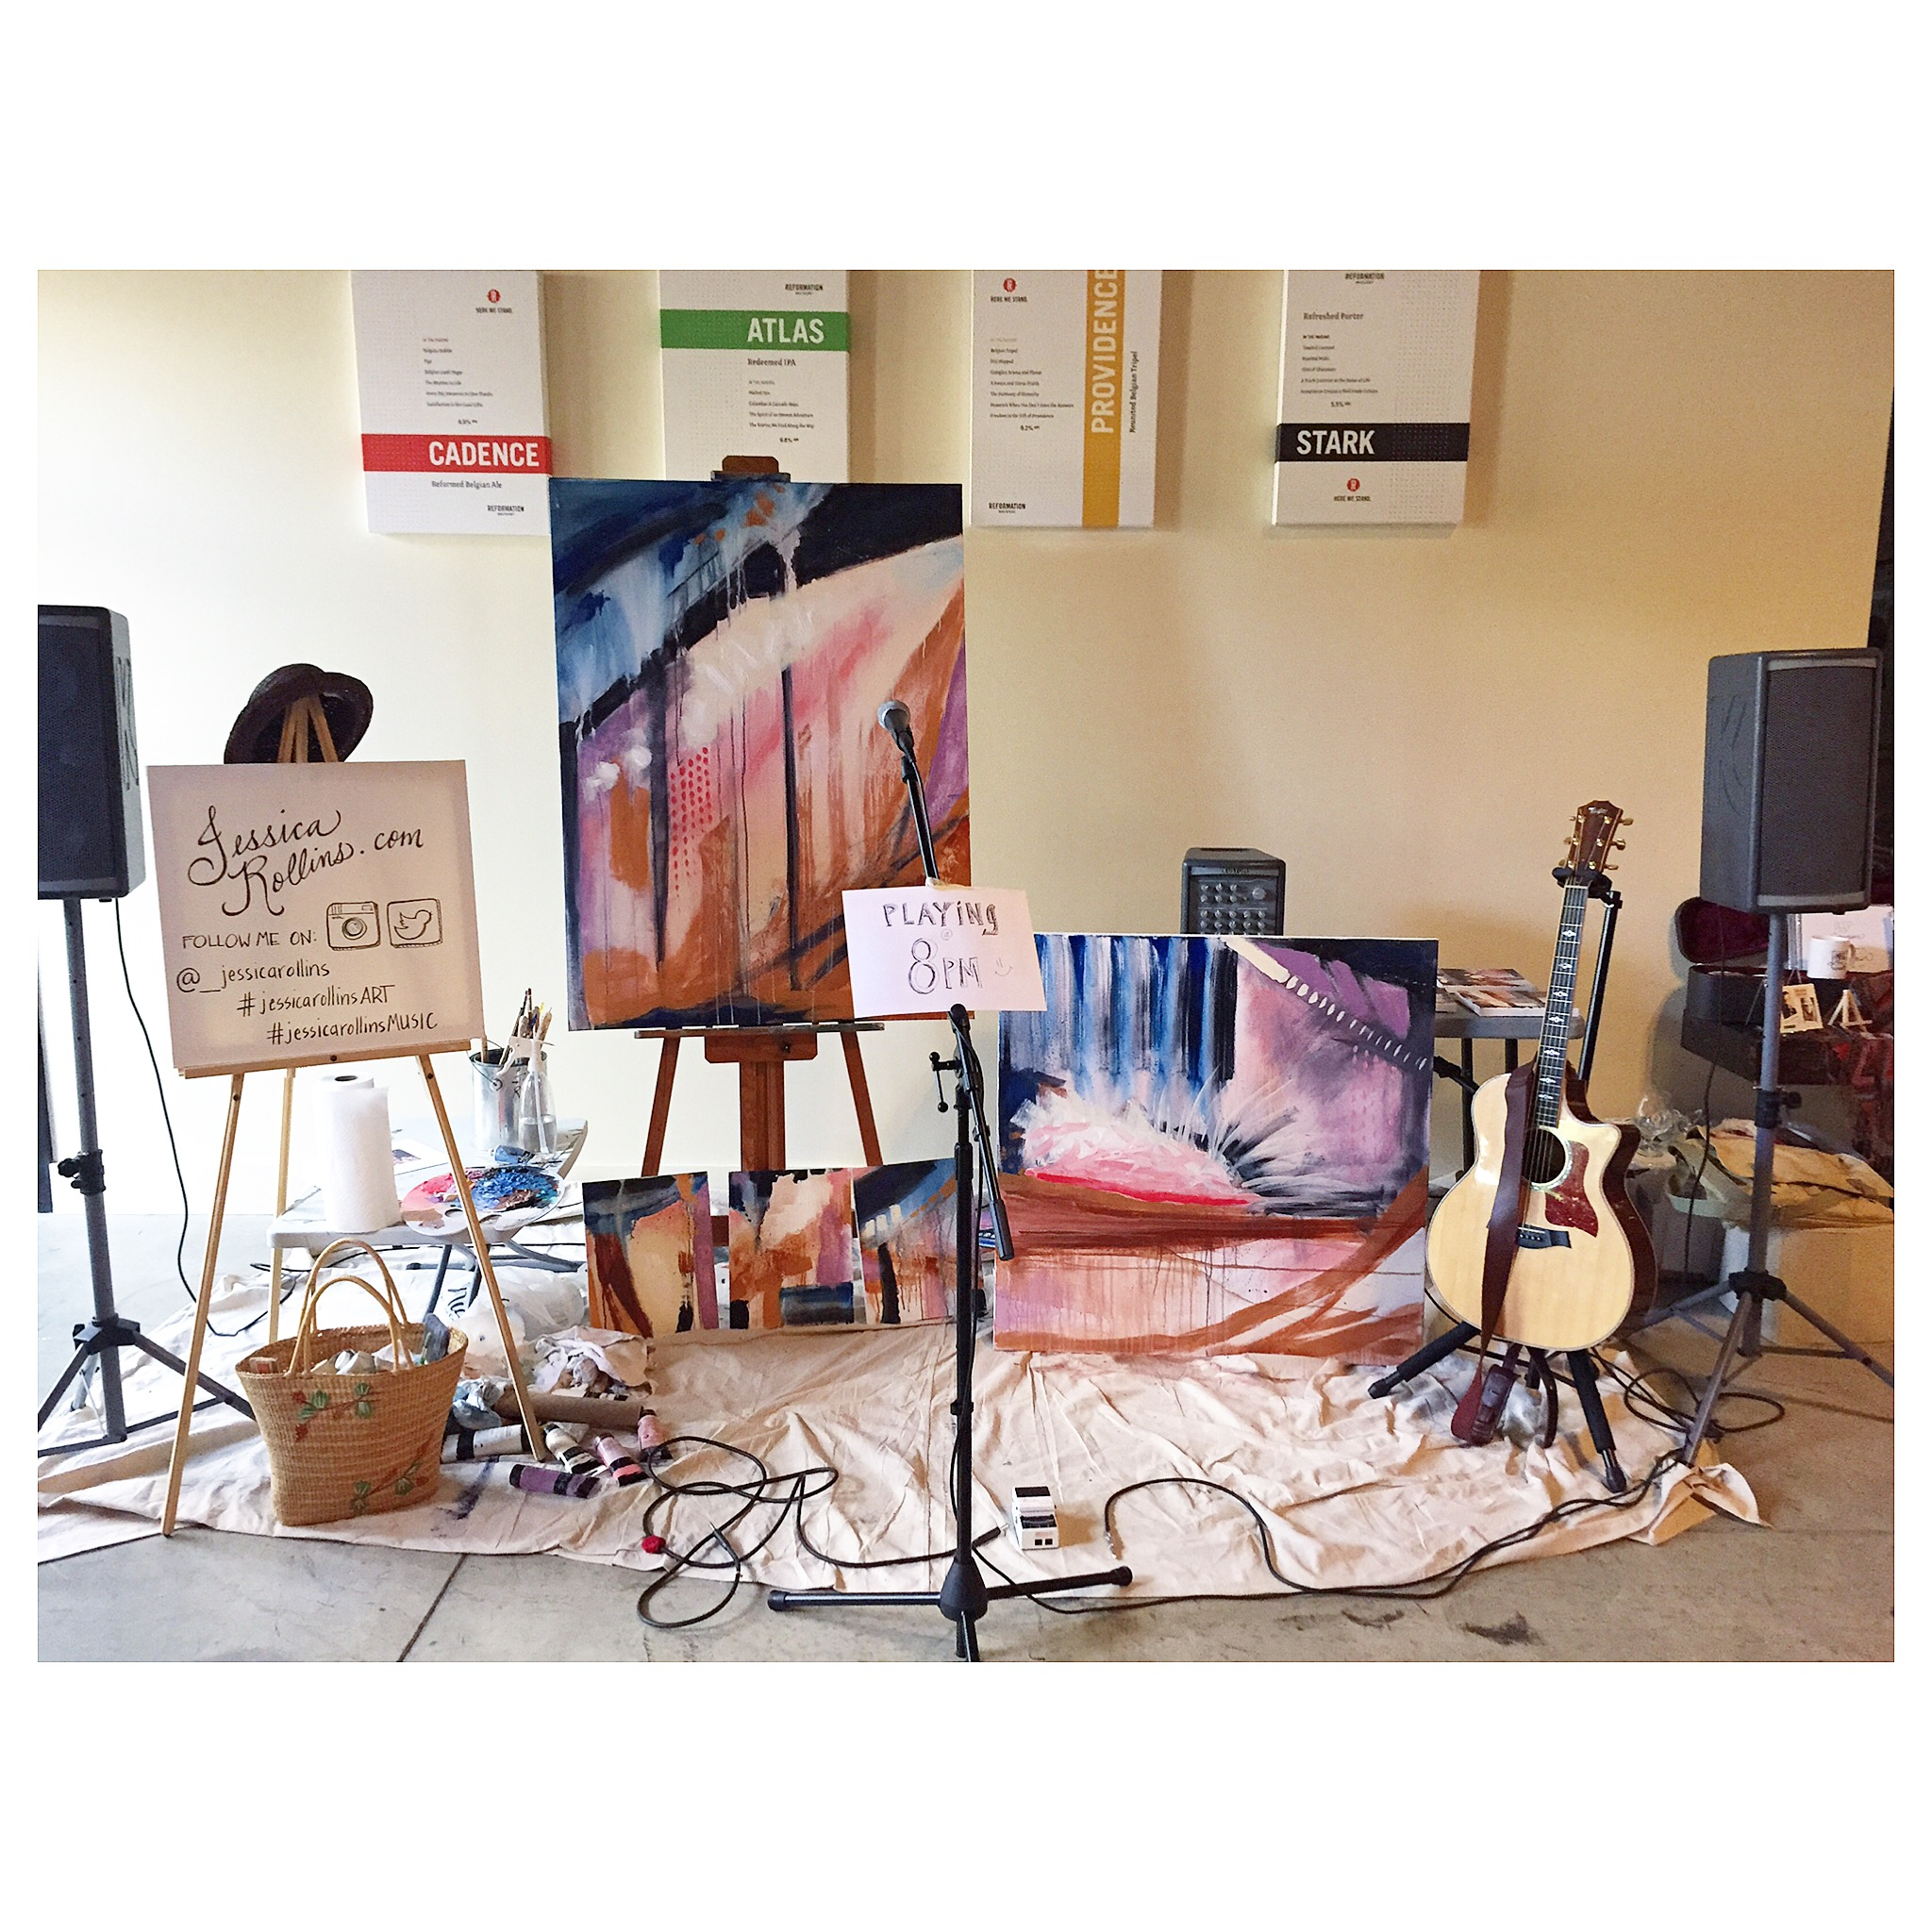 After my LIVEpainting, I did a little live music set.  My little set up.  Playing at 8:)